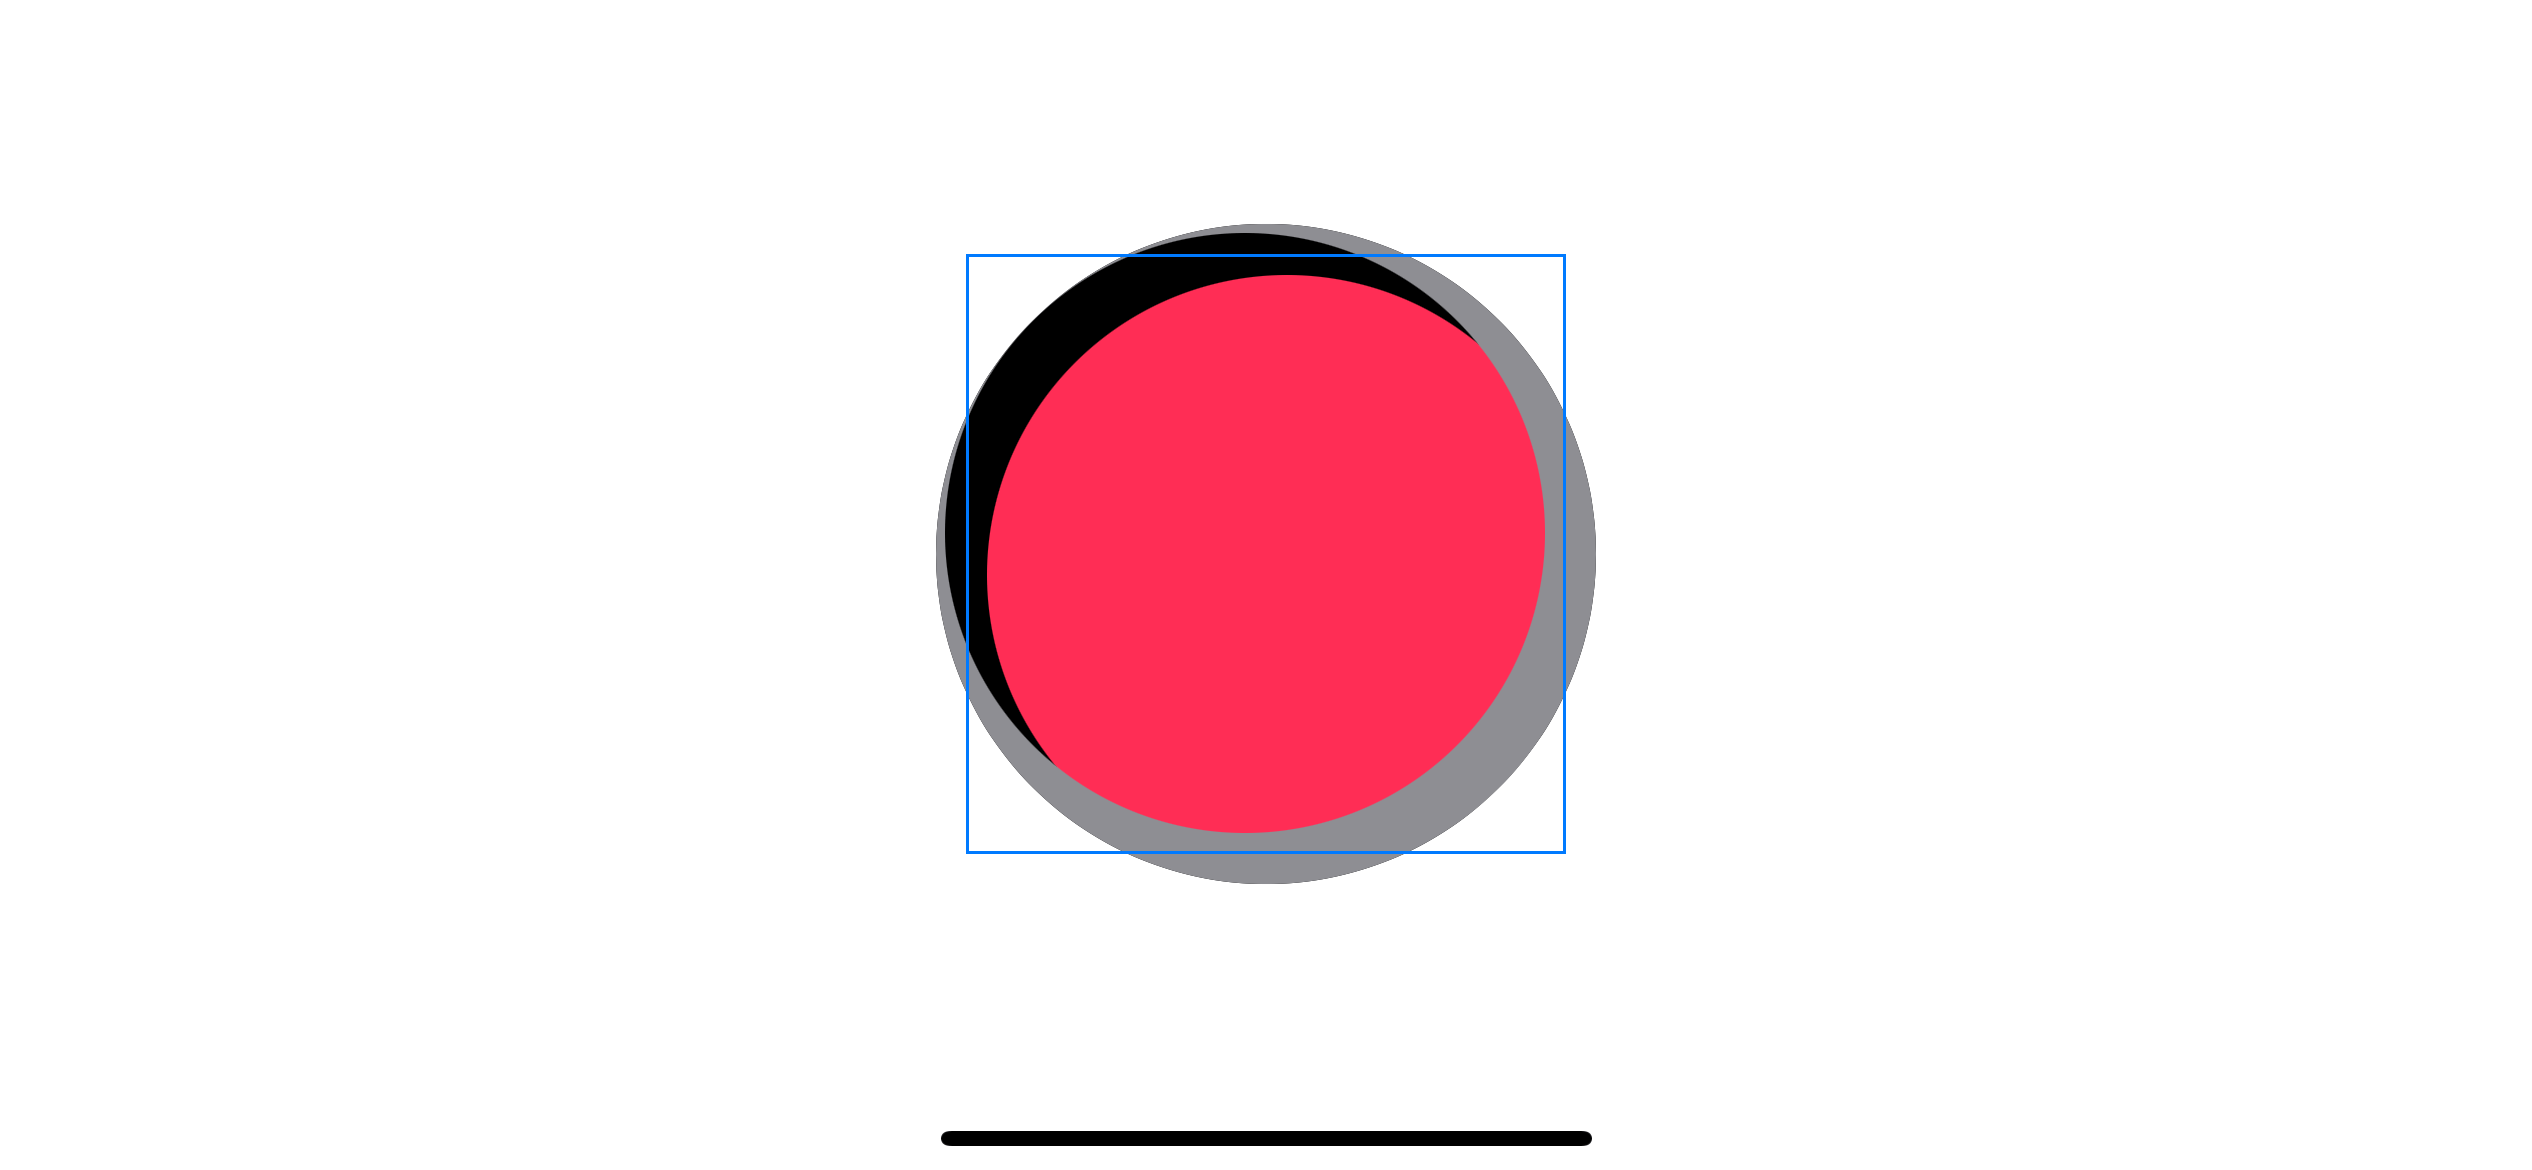 Shadow is clipped by the larger circle, which yields the same result as before.